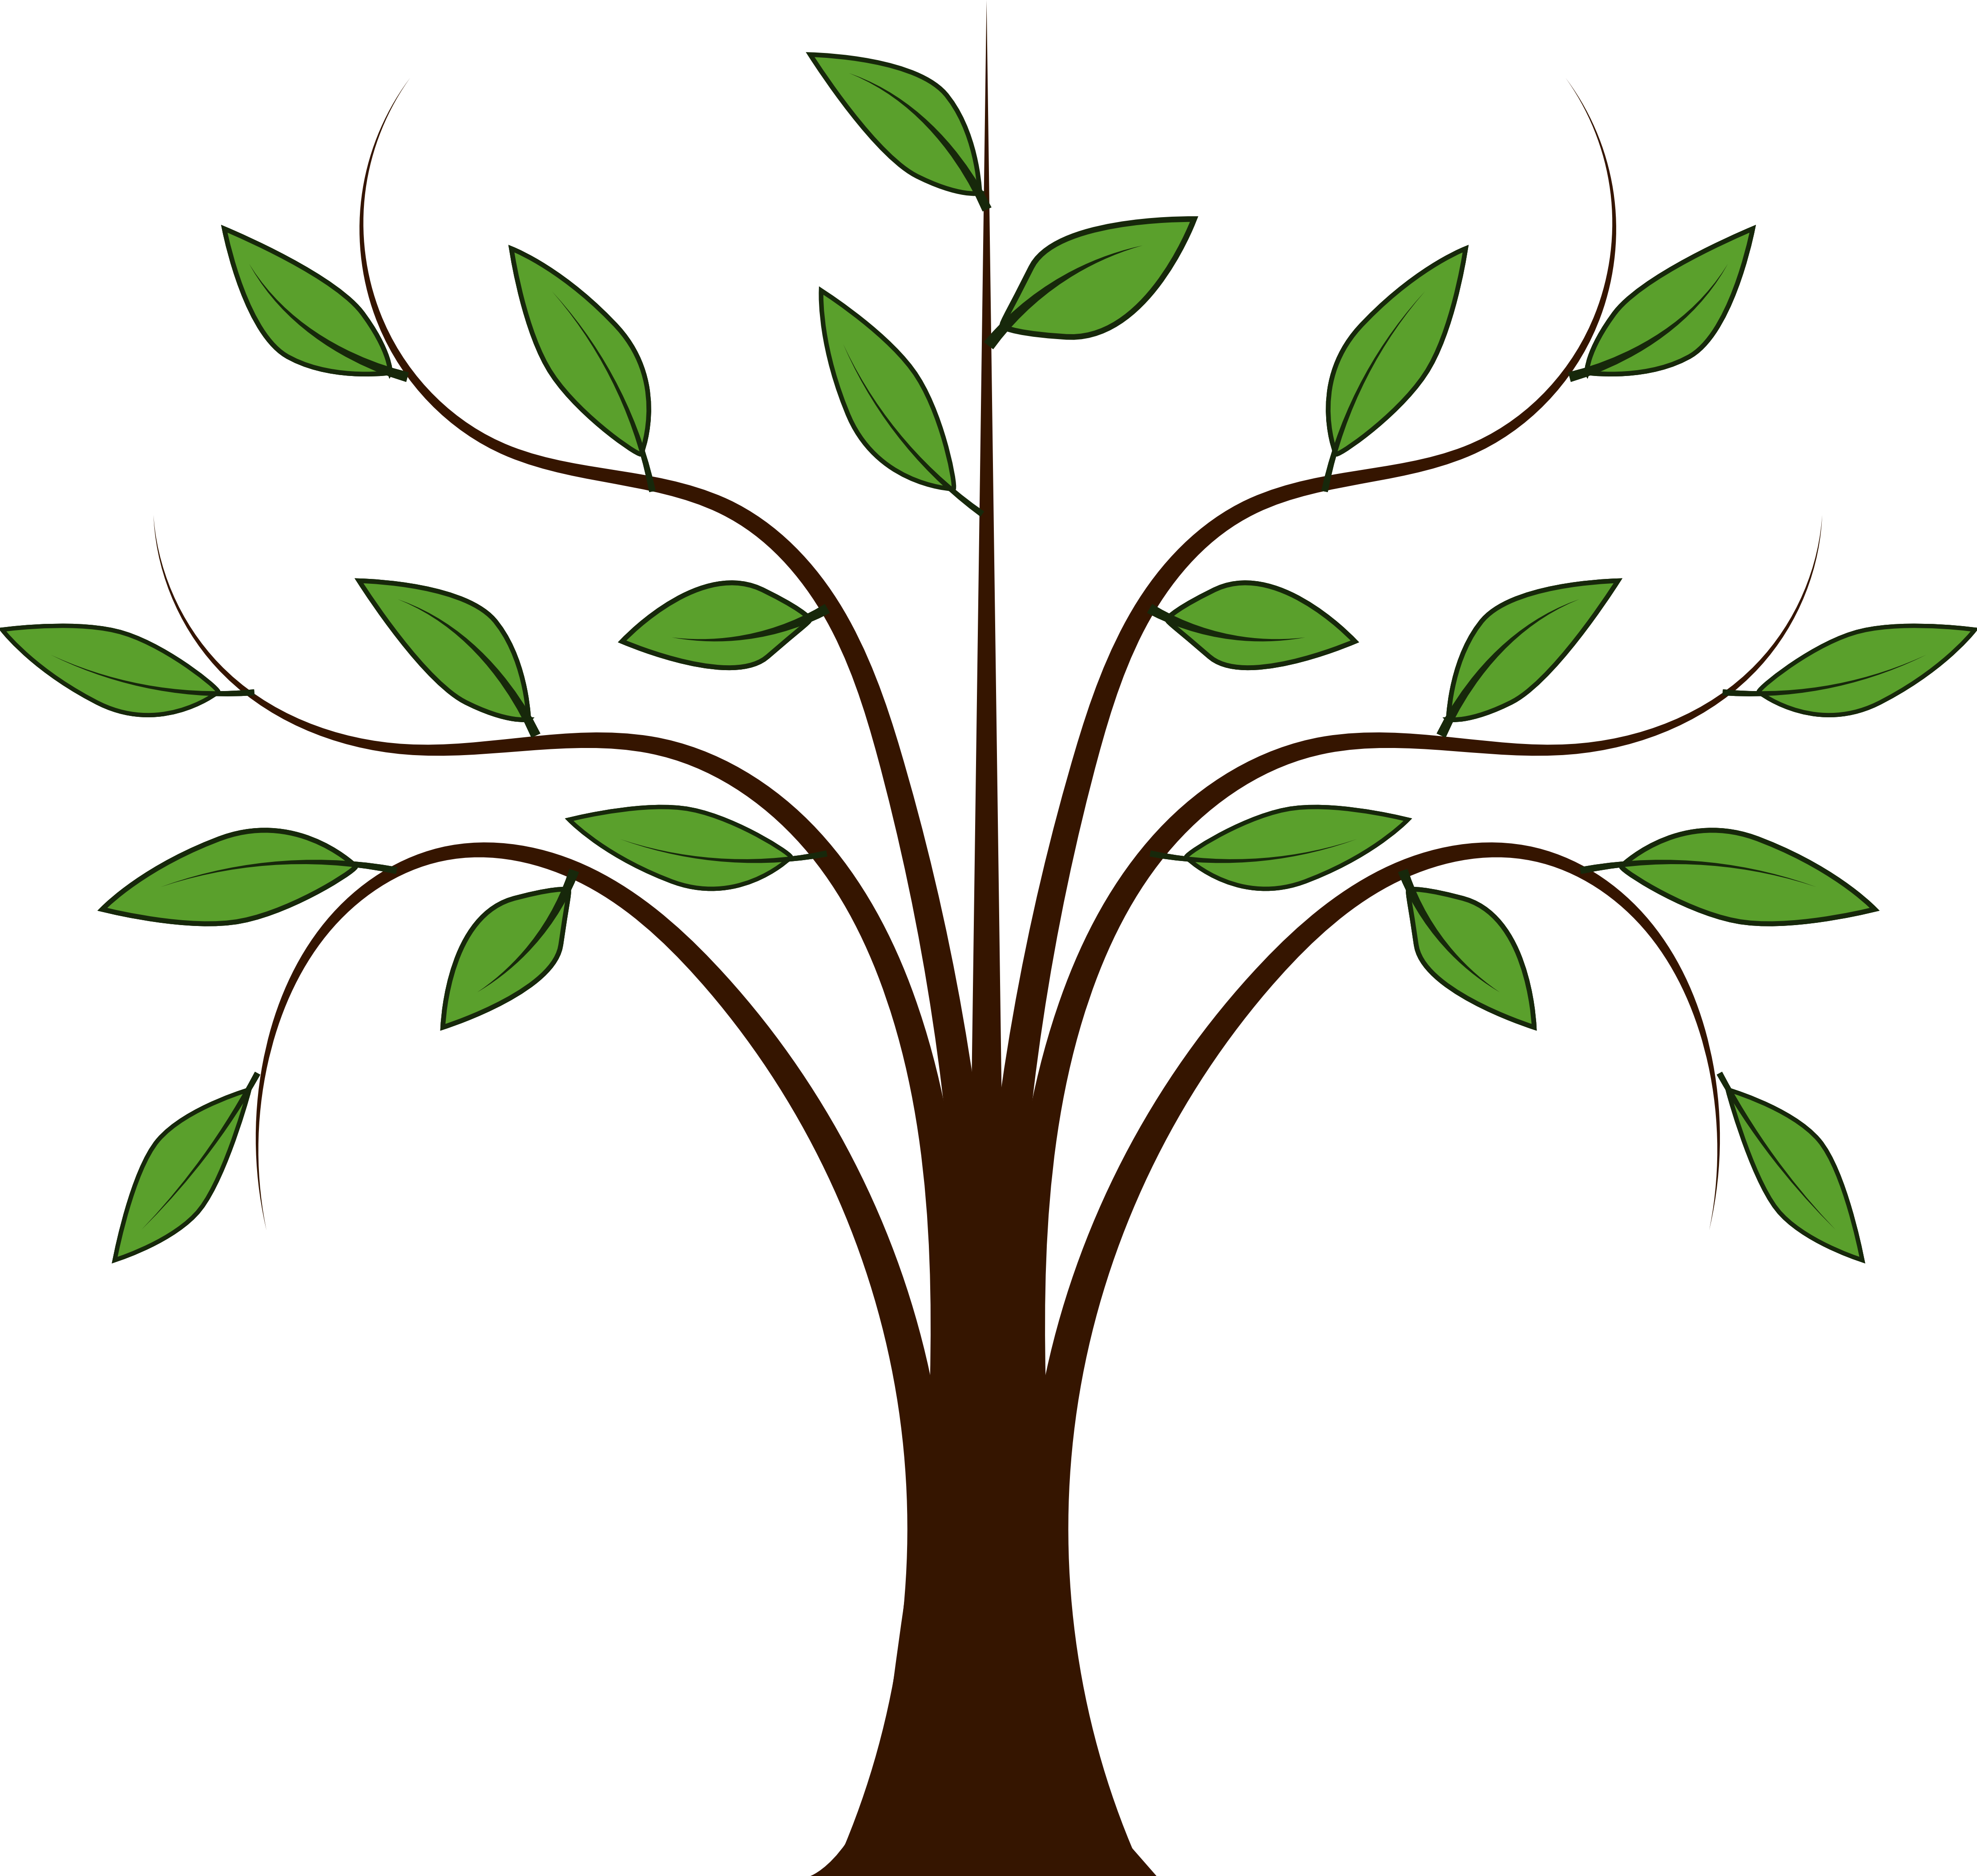 Simple Tree ClipArt free image